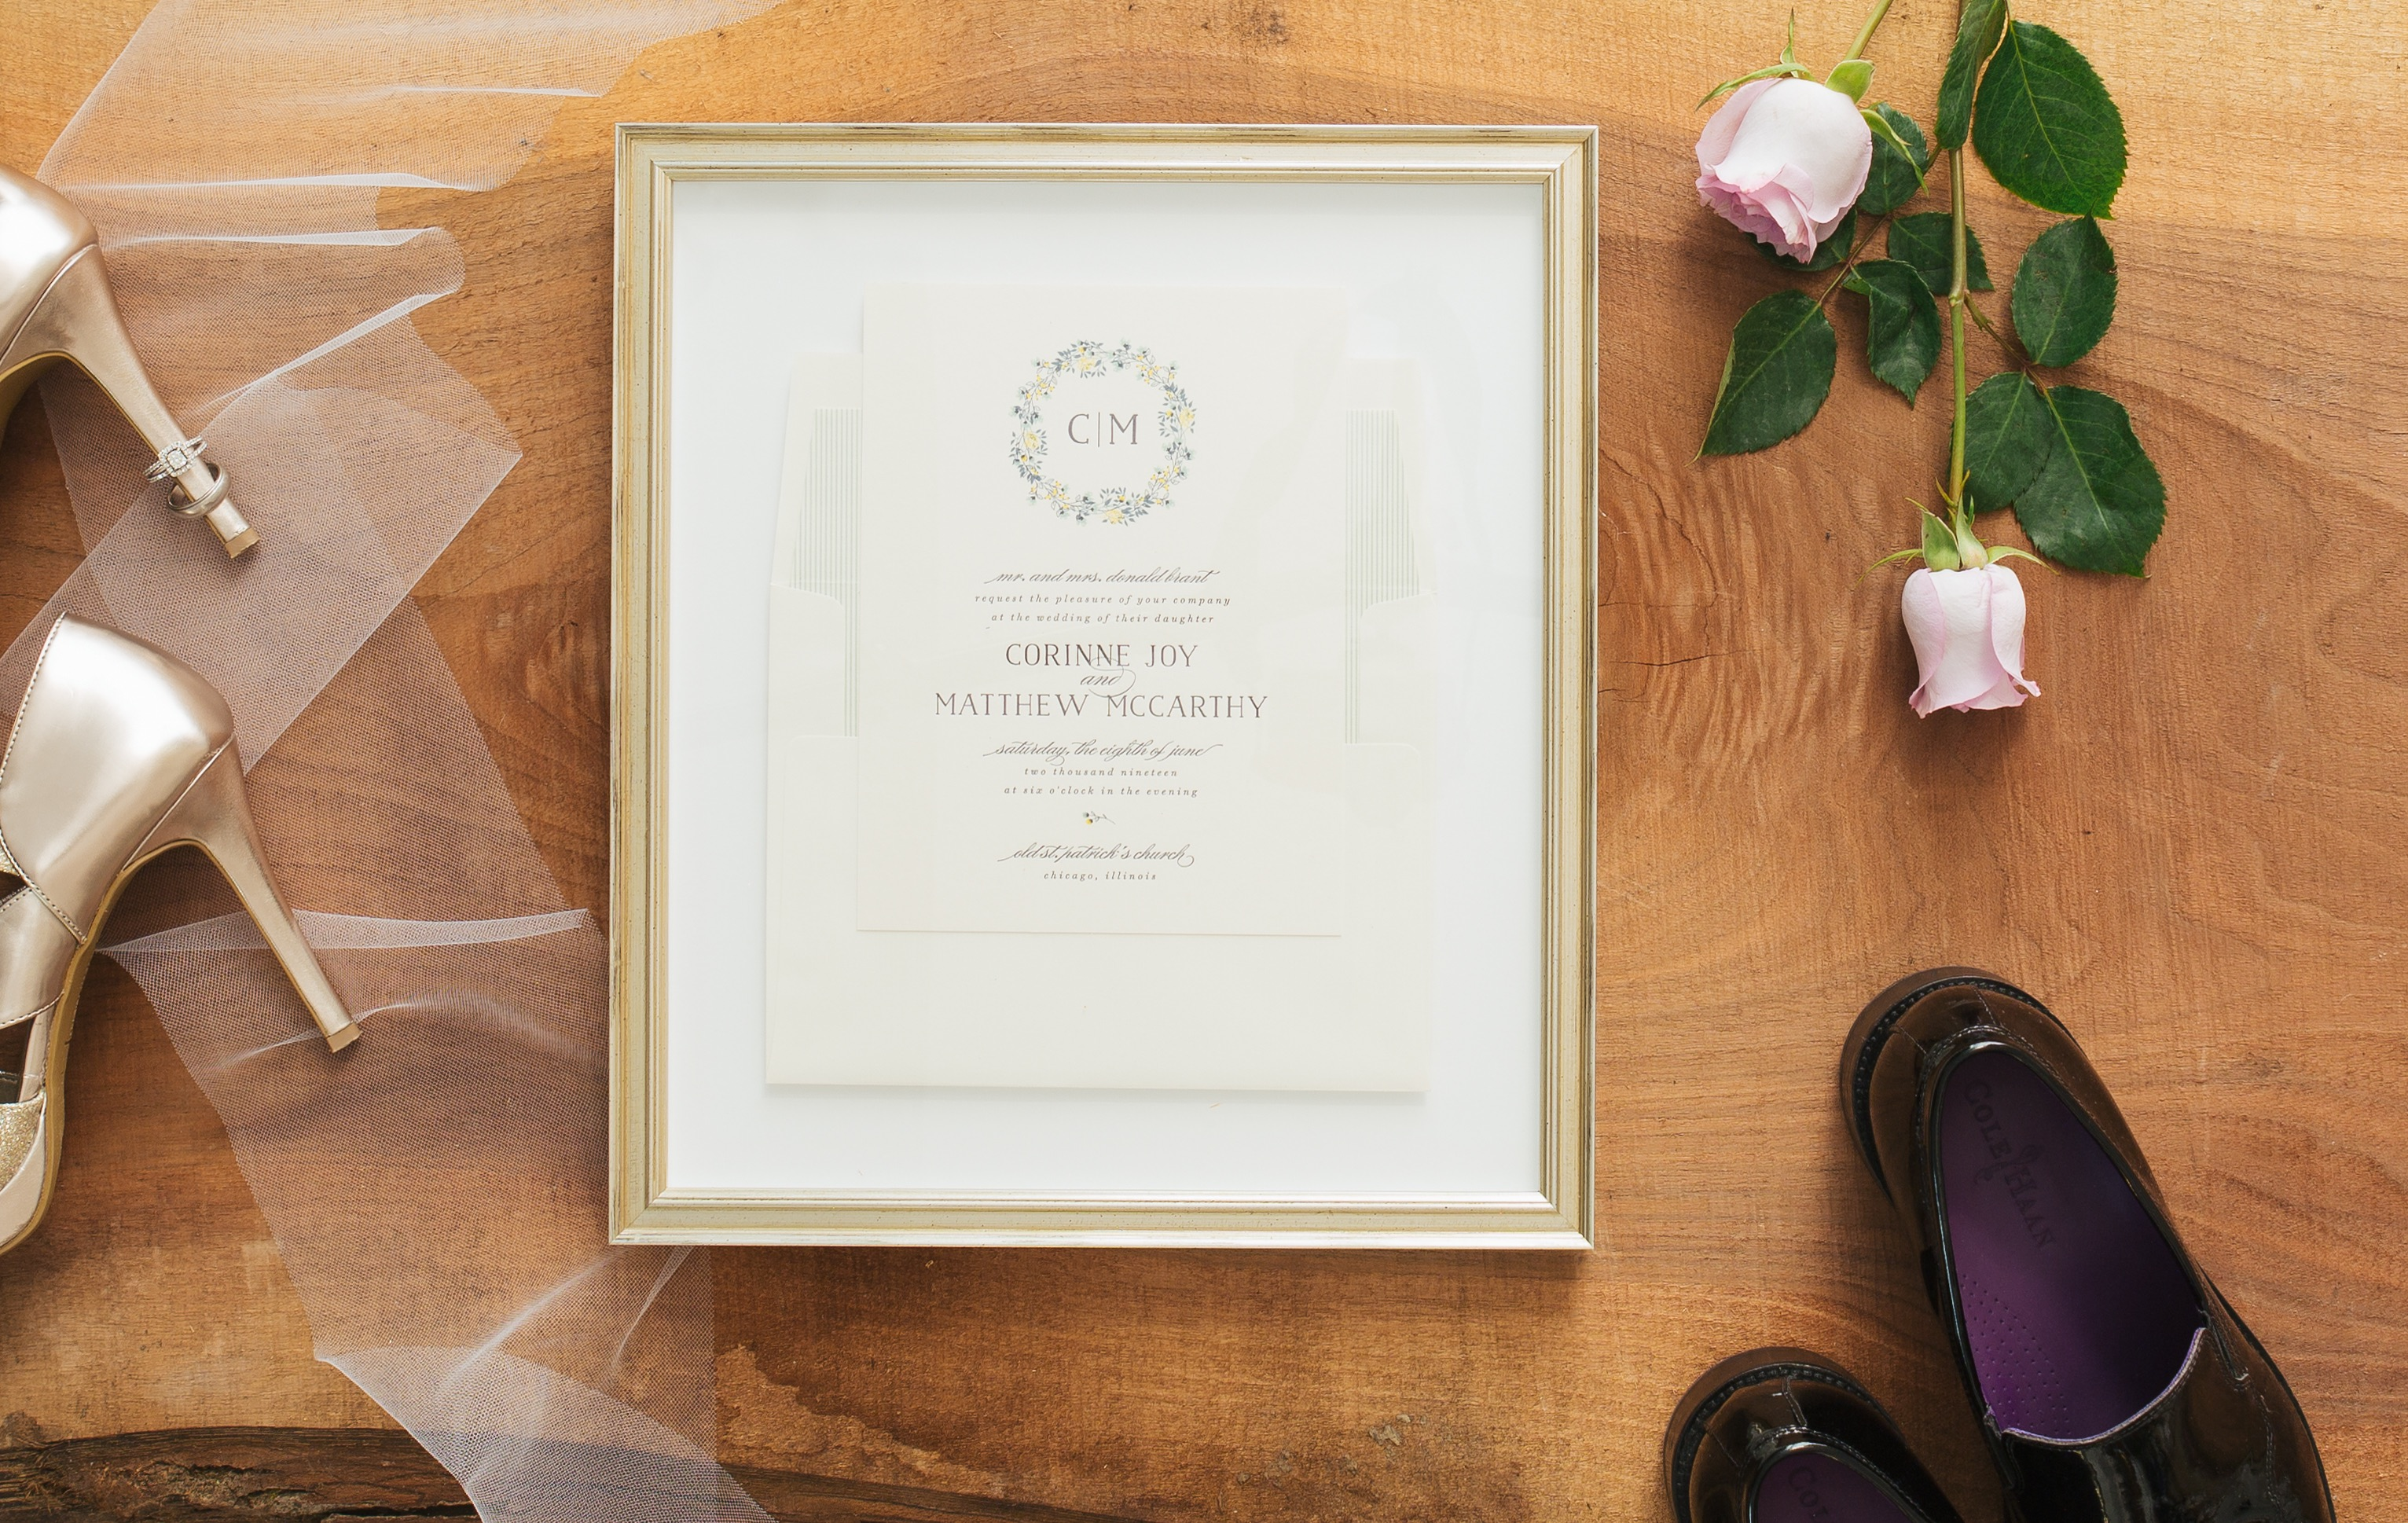 framed wedding invitation on wood table